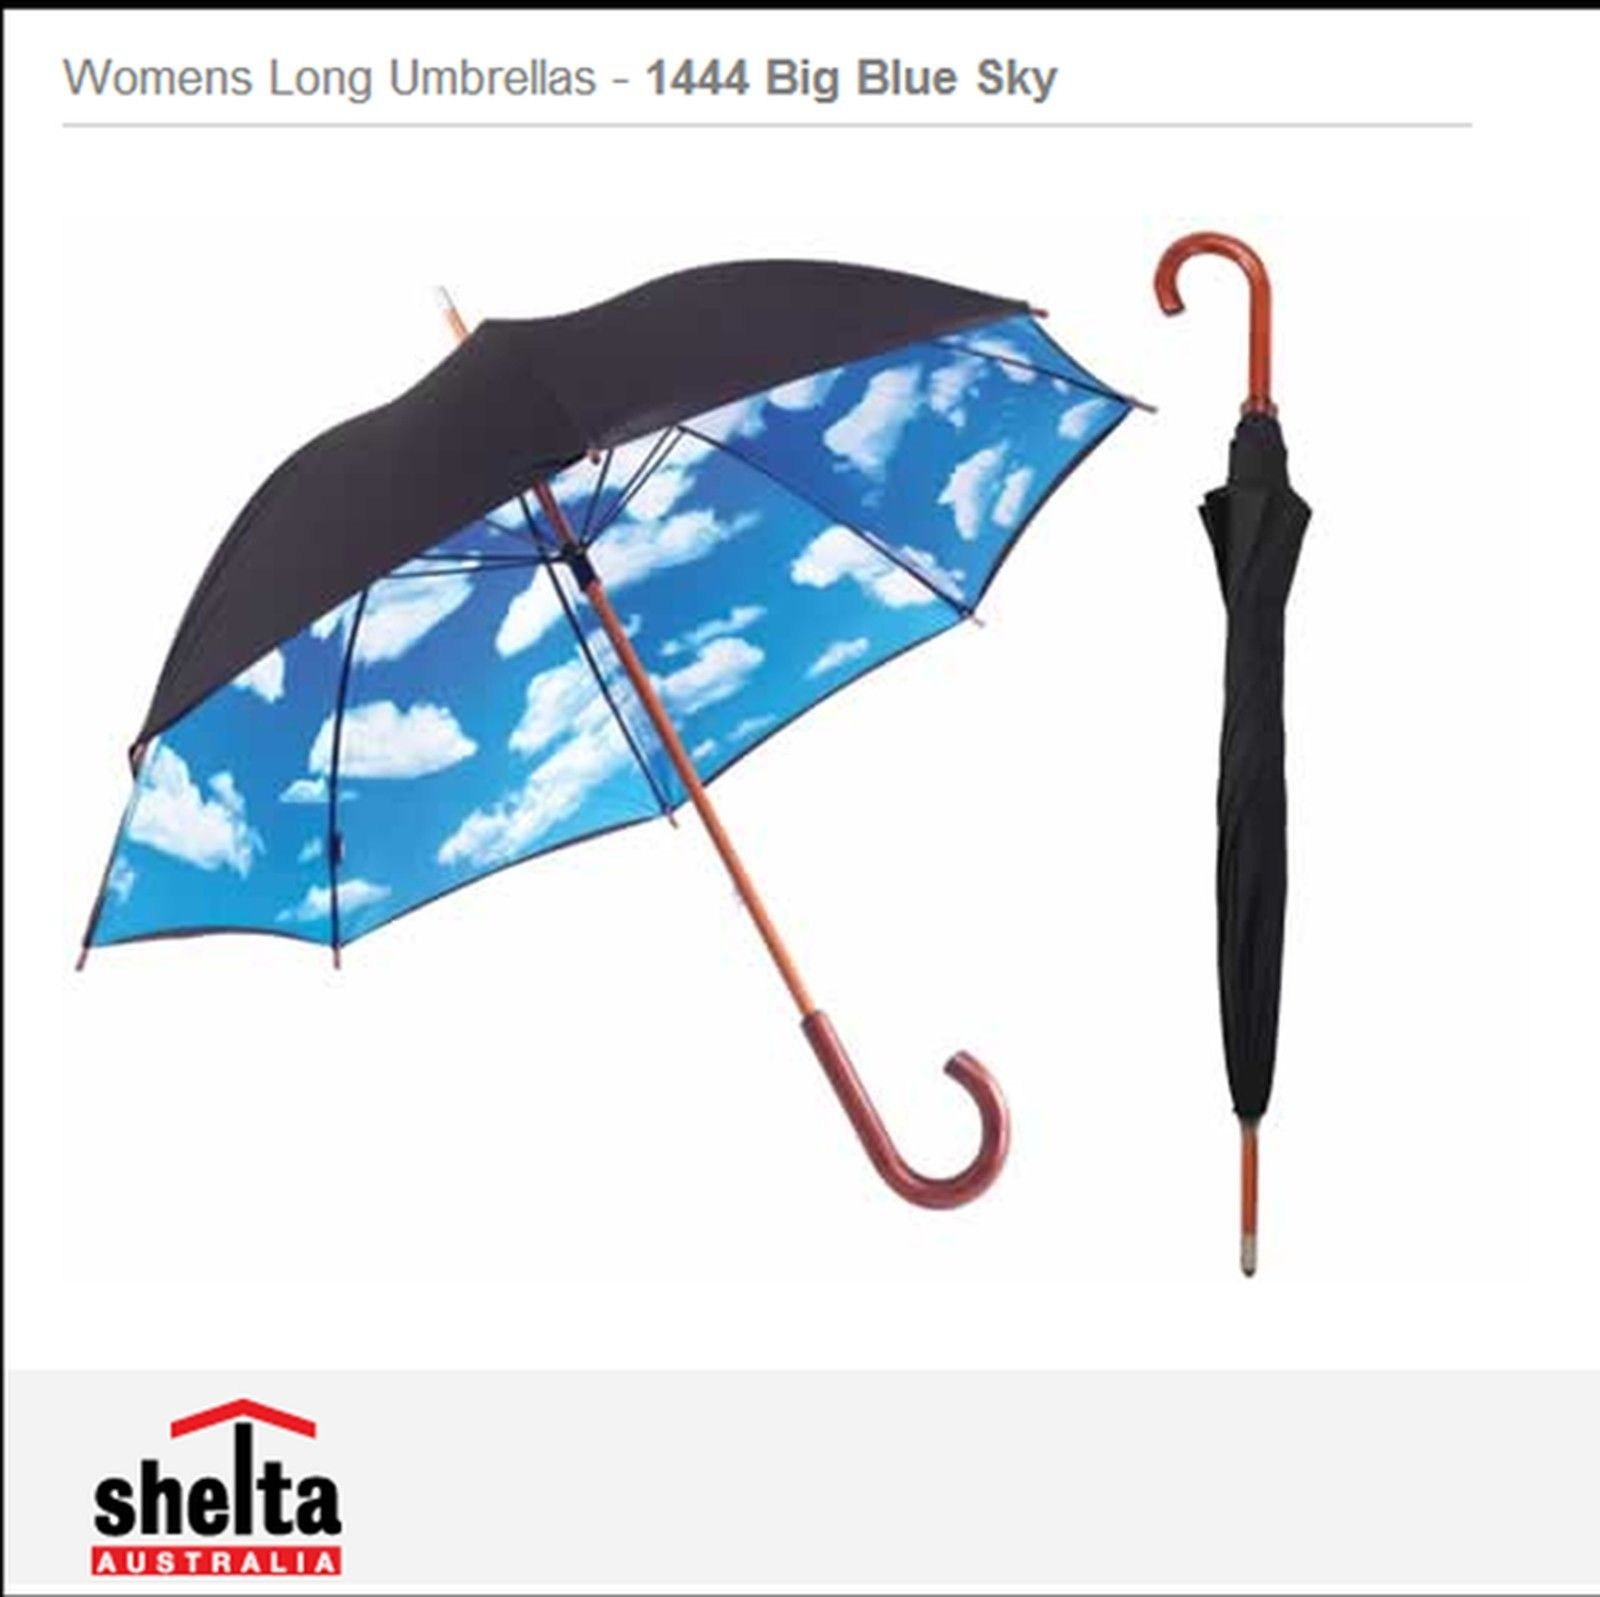 Shelta Womens Long Umbrellas - 1444 Big Blue Sky